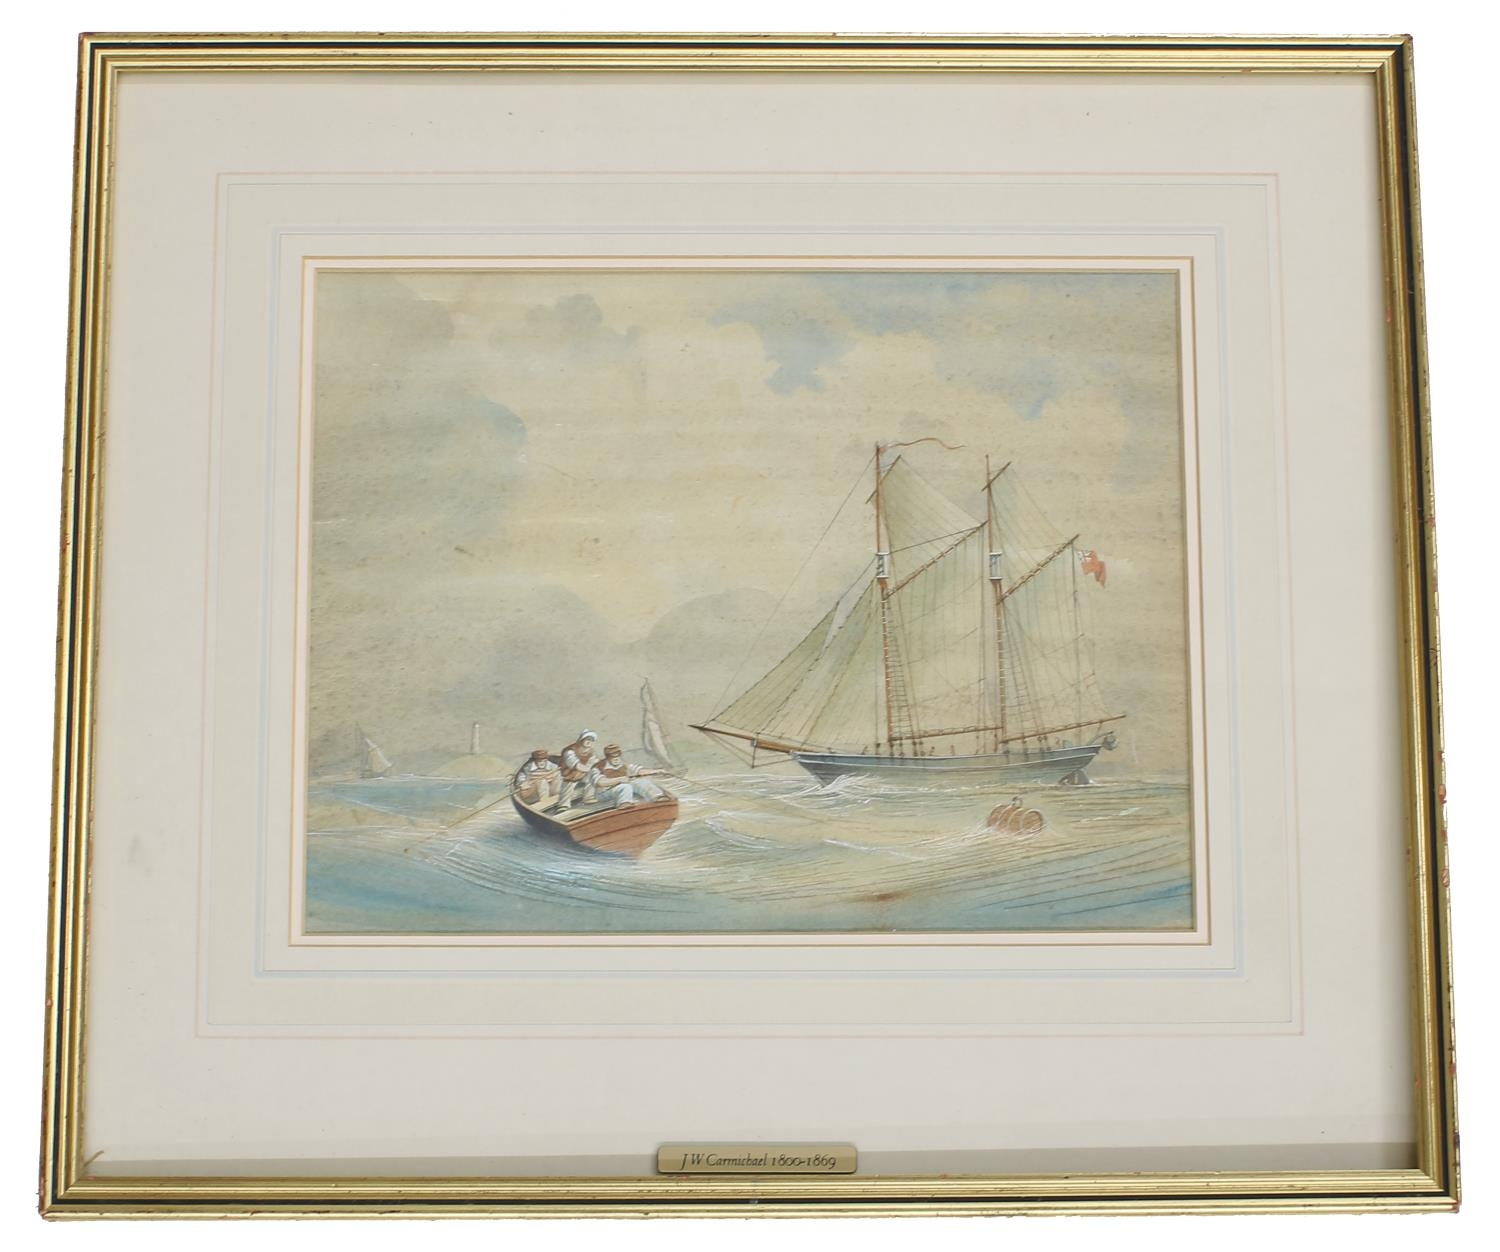 Follower of John Wilson Carmichael (19th century) -Ketch under full sail with a rowing boat in the